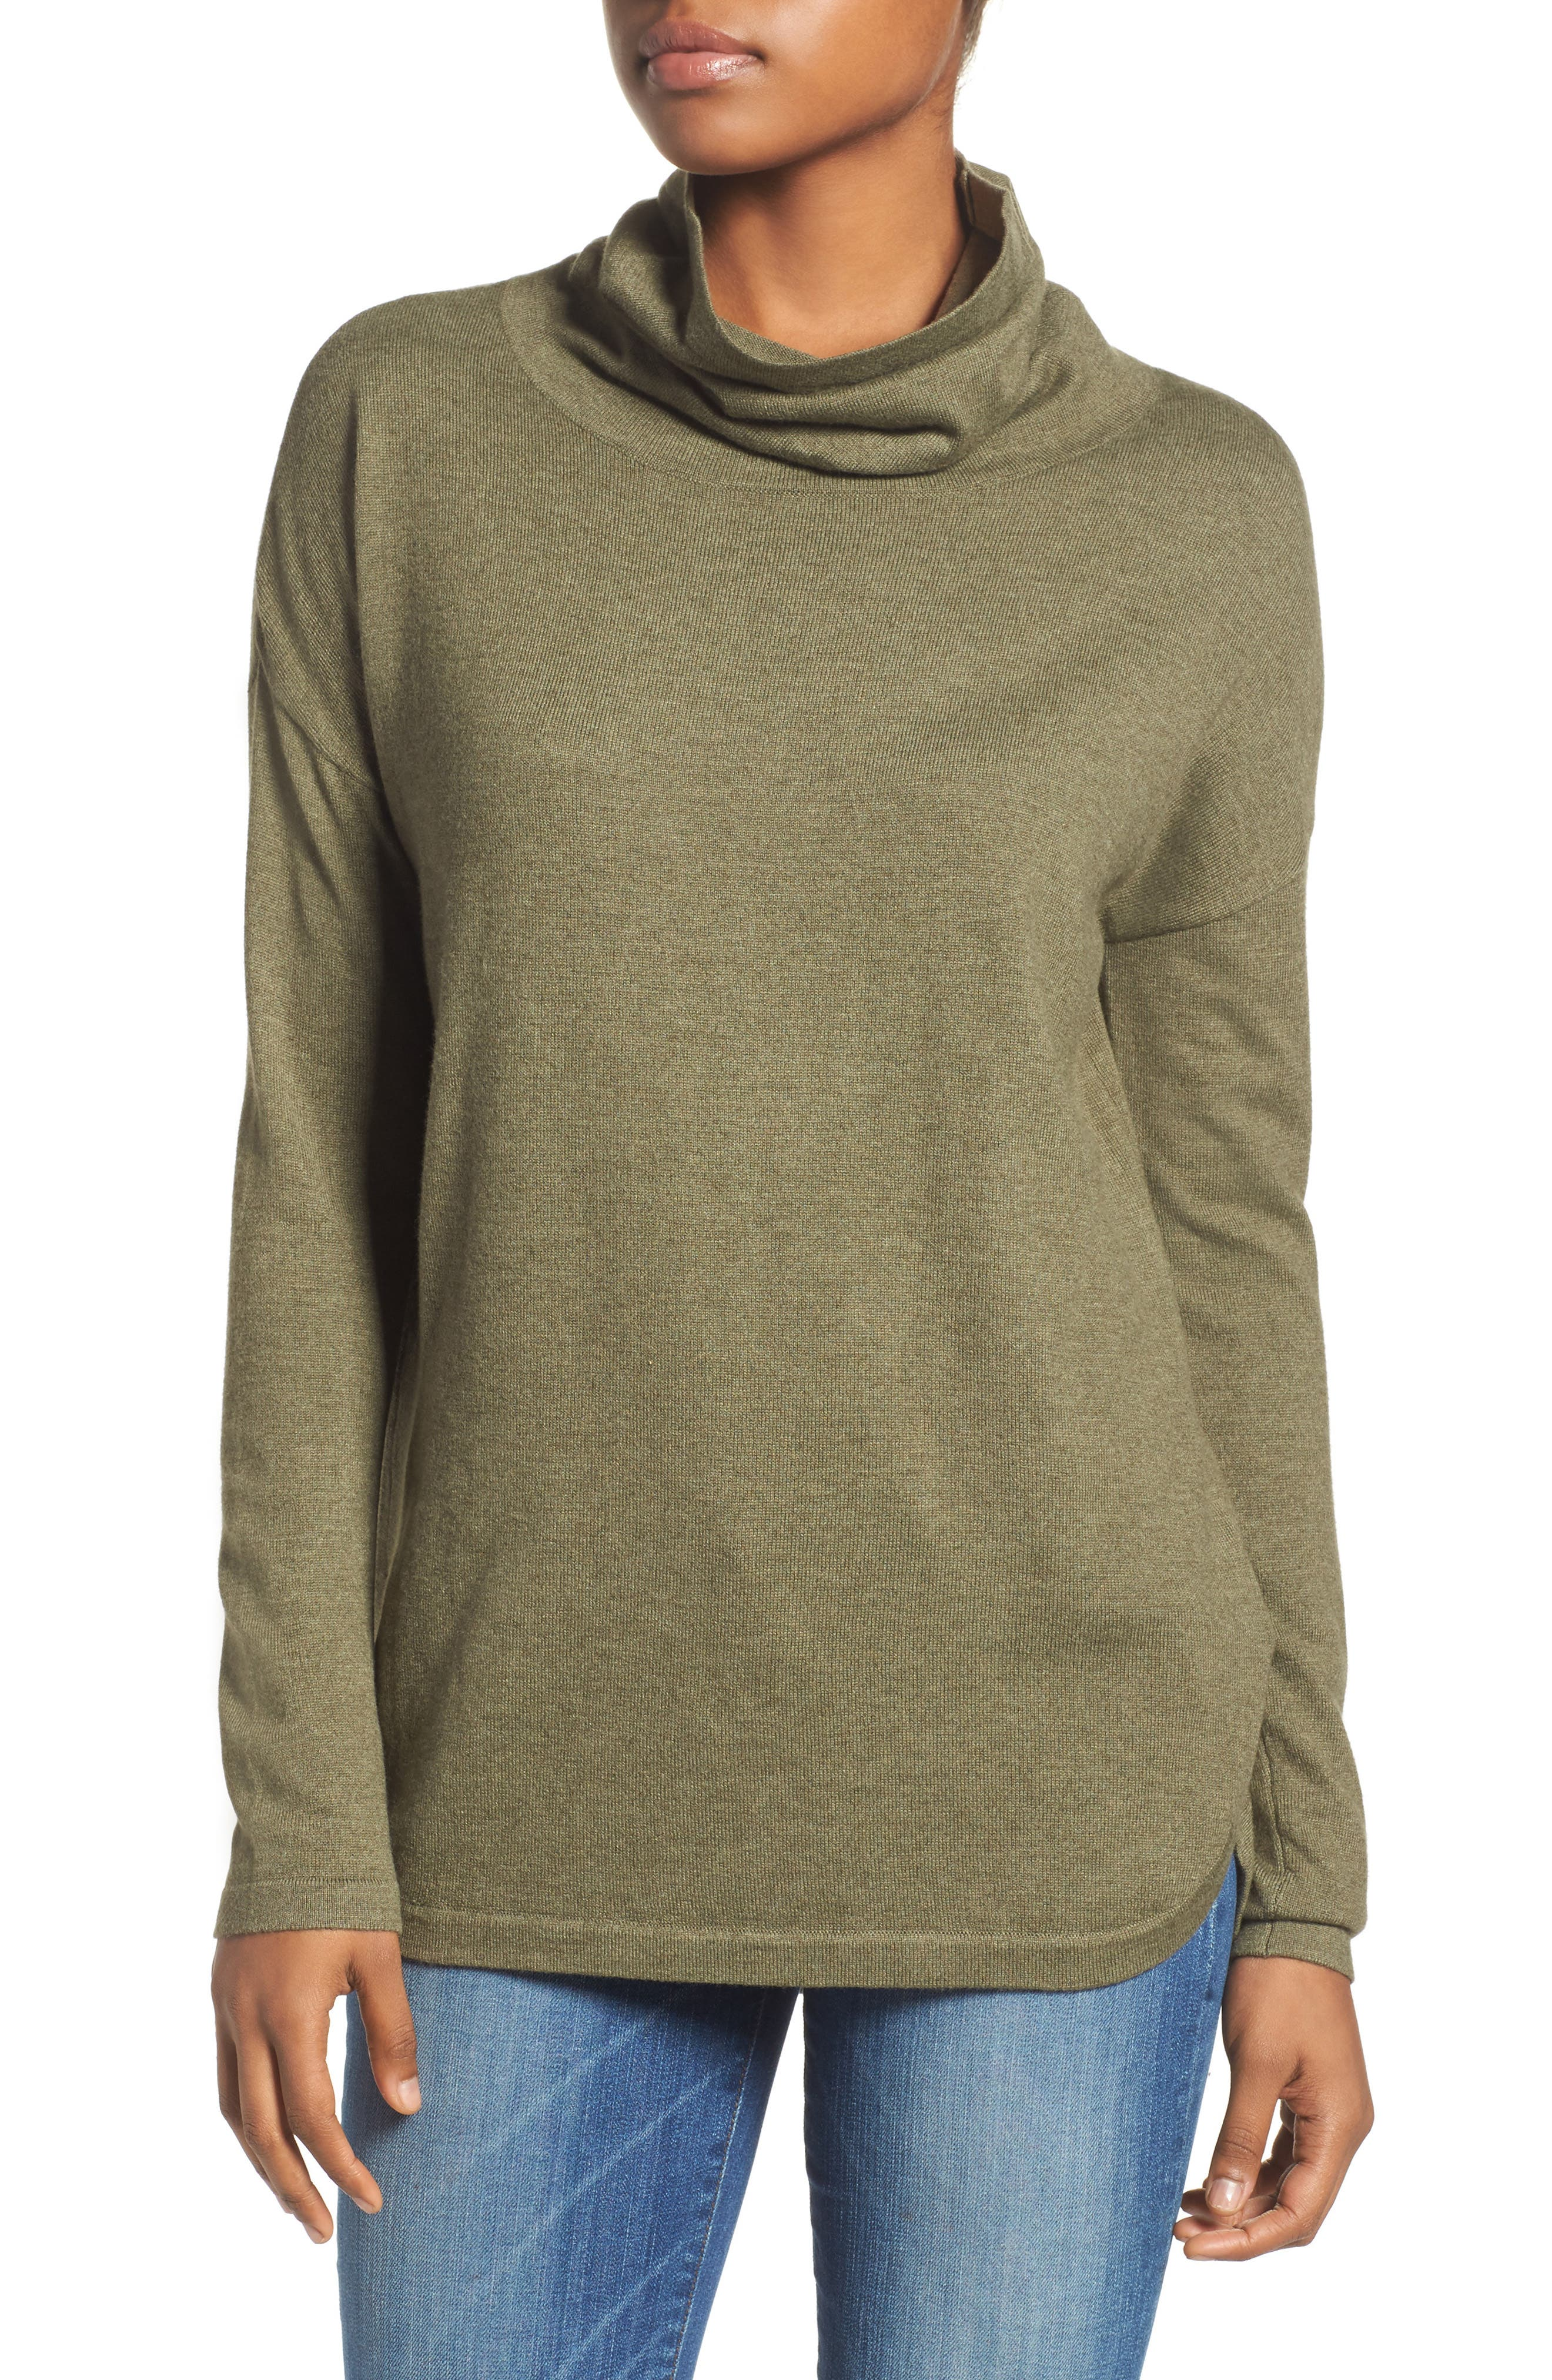 Woodland Tunic Sweater,                             Main thumbnail 1, color,                             Burnt Olive Green Heather